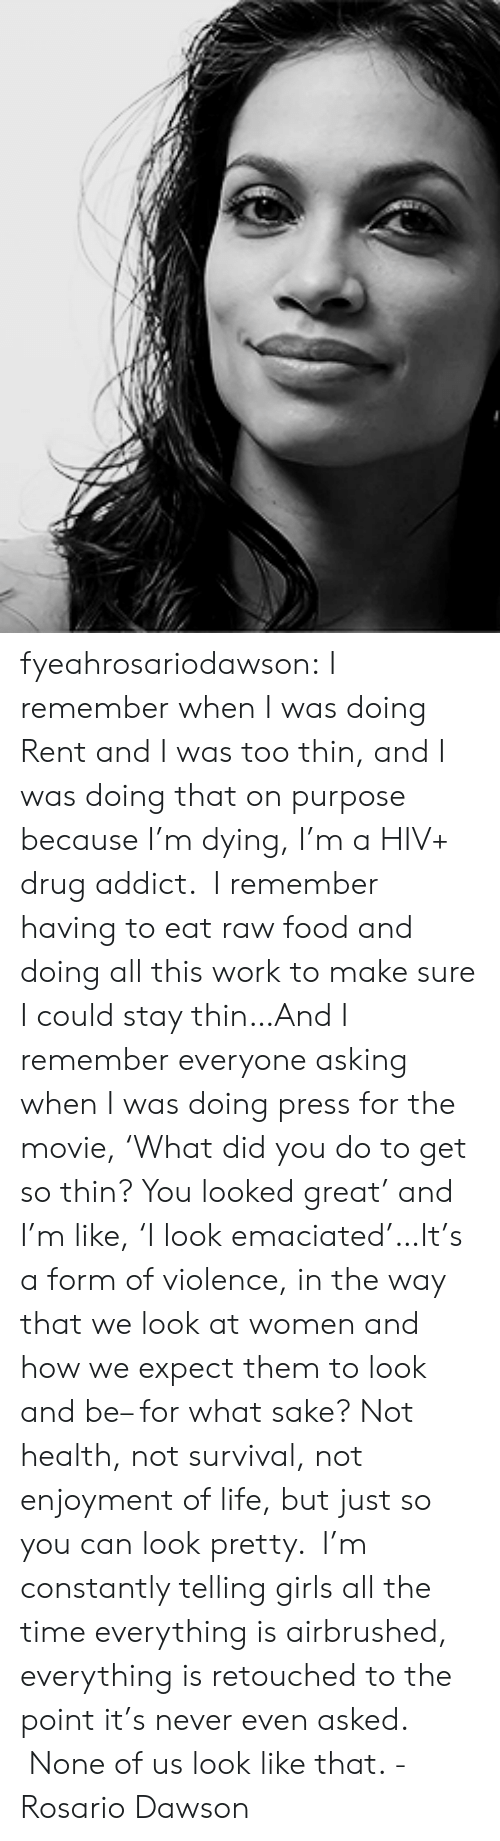 drug addict: fyeahrosariodawson:  I remember when I was doing Rent and I was too thin, and I was doing that on purpose because I'm dying, I'm a HIV+ drug addict. I remember having to eat raw food and doing all this work to make sure I could stay thin…And I remember everyone asking when I was doing press for the movie,'What did you do to get so thin? You looked great' and I'm like,'I look emaciated'…It's a form of violence, in the way that we look at women and how we expect them to look and be– for what sake? Not health, not survival, not enjoyment of life, but just so you can look pretty. I'm constantly telling girls all the time everything is airbrushed, everything is retouched to the point it's never even asked. None of us look like that. - Rosario Dawson